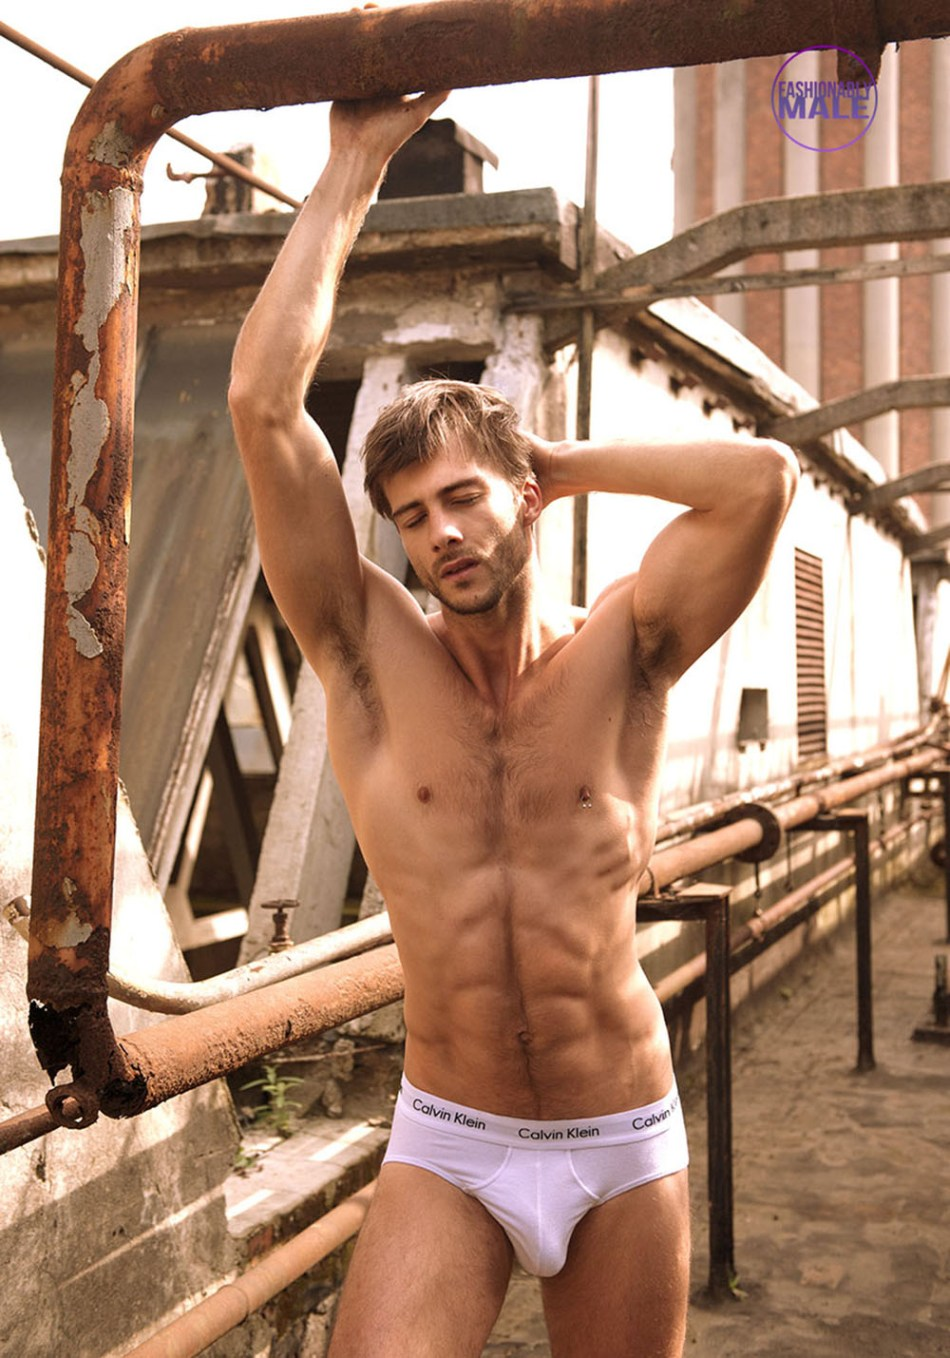 Gilberto Fritsch by Daniel Rodrigues for Fashionably Male6